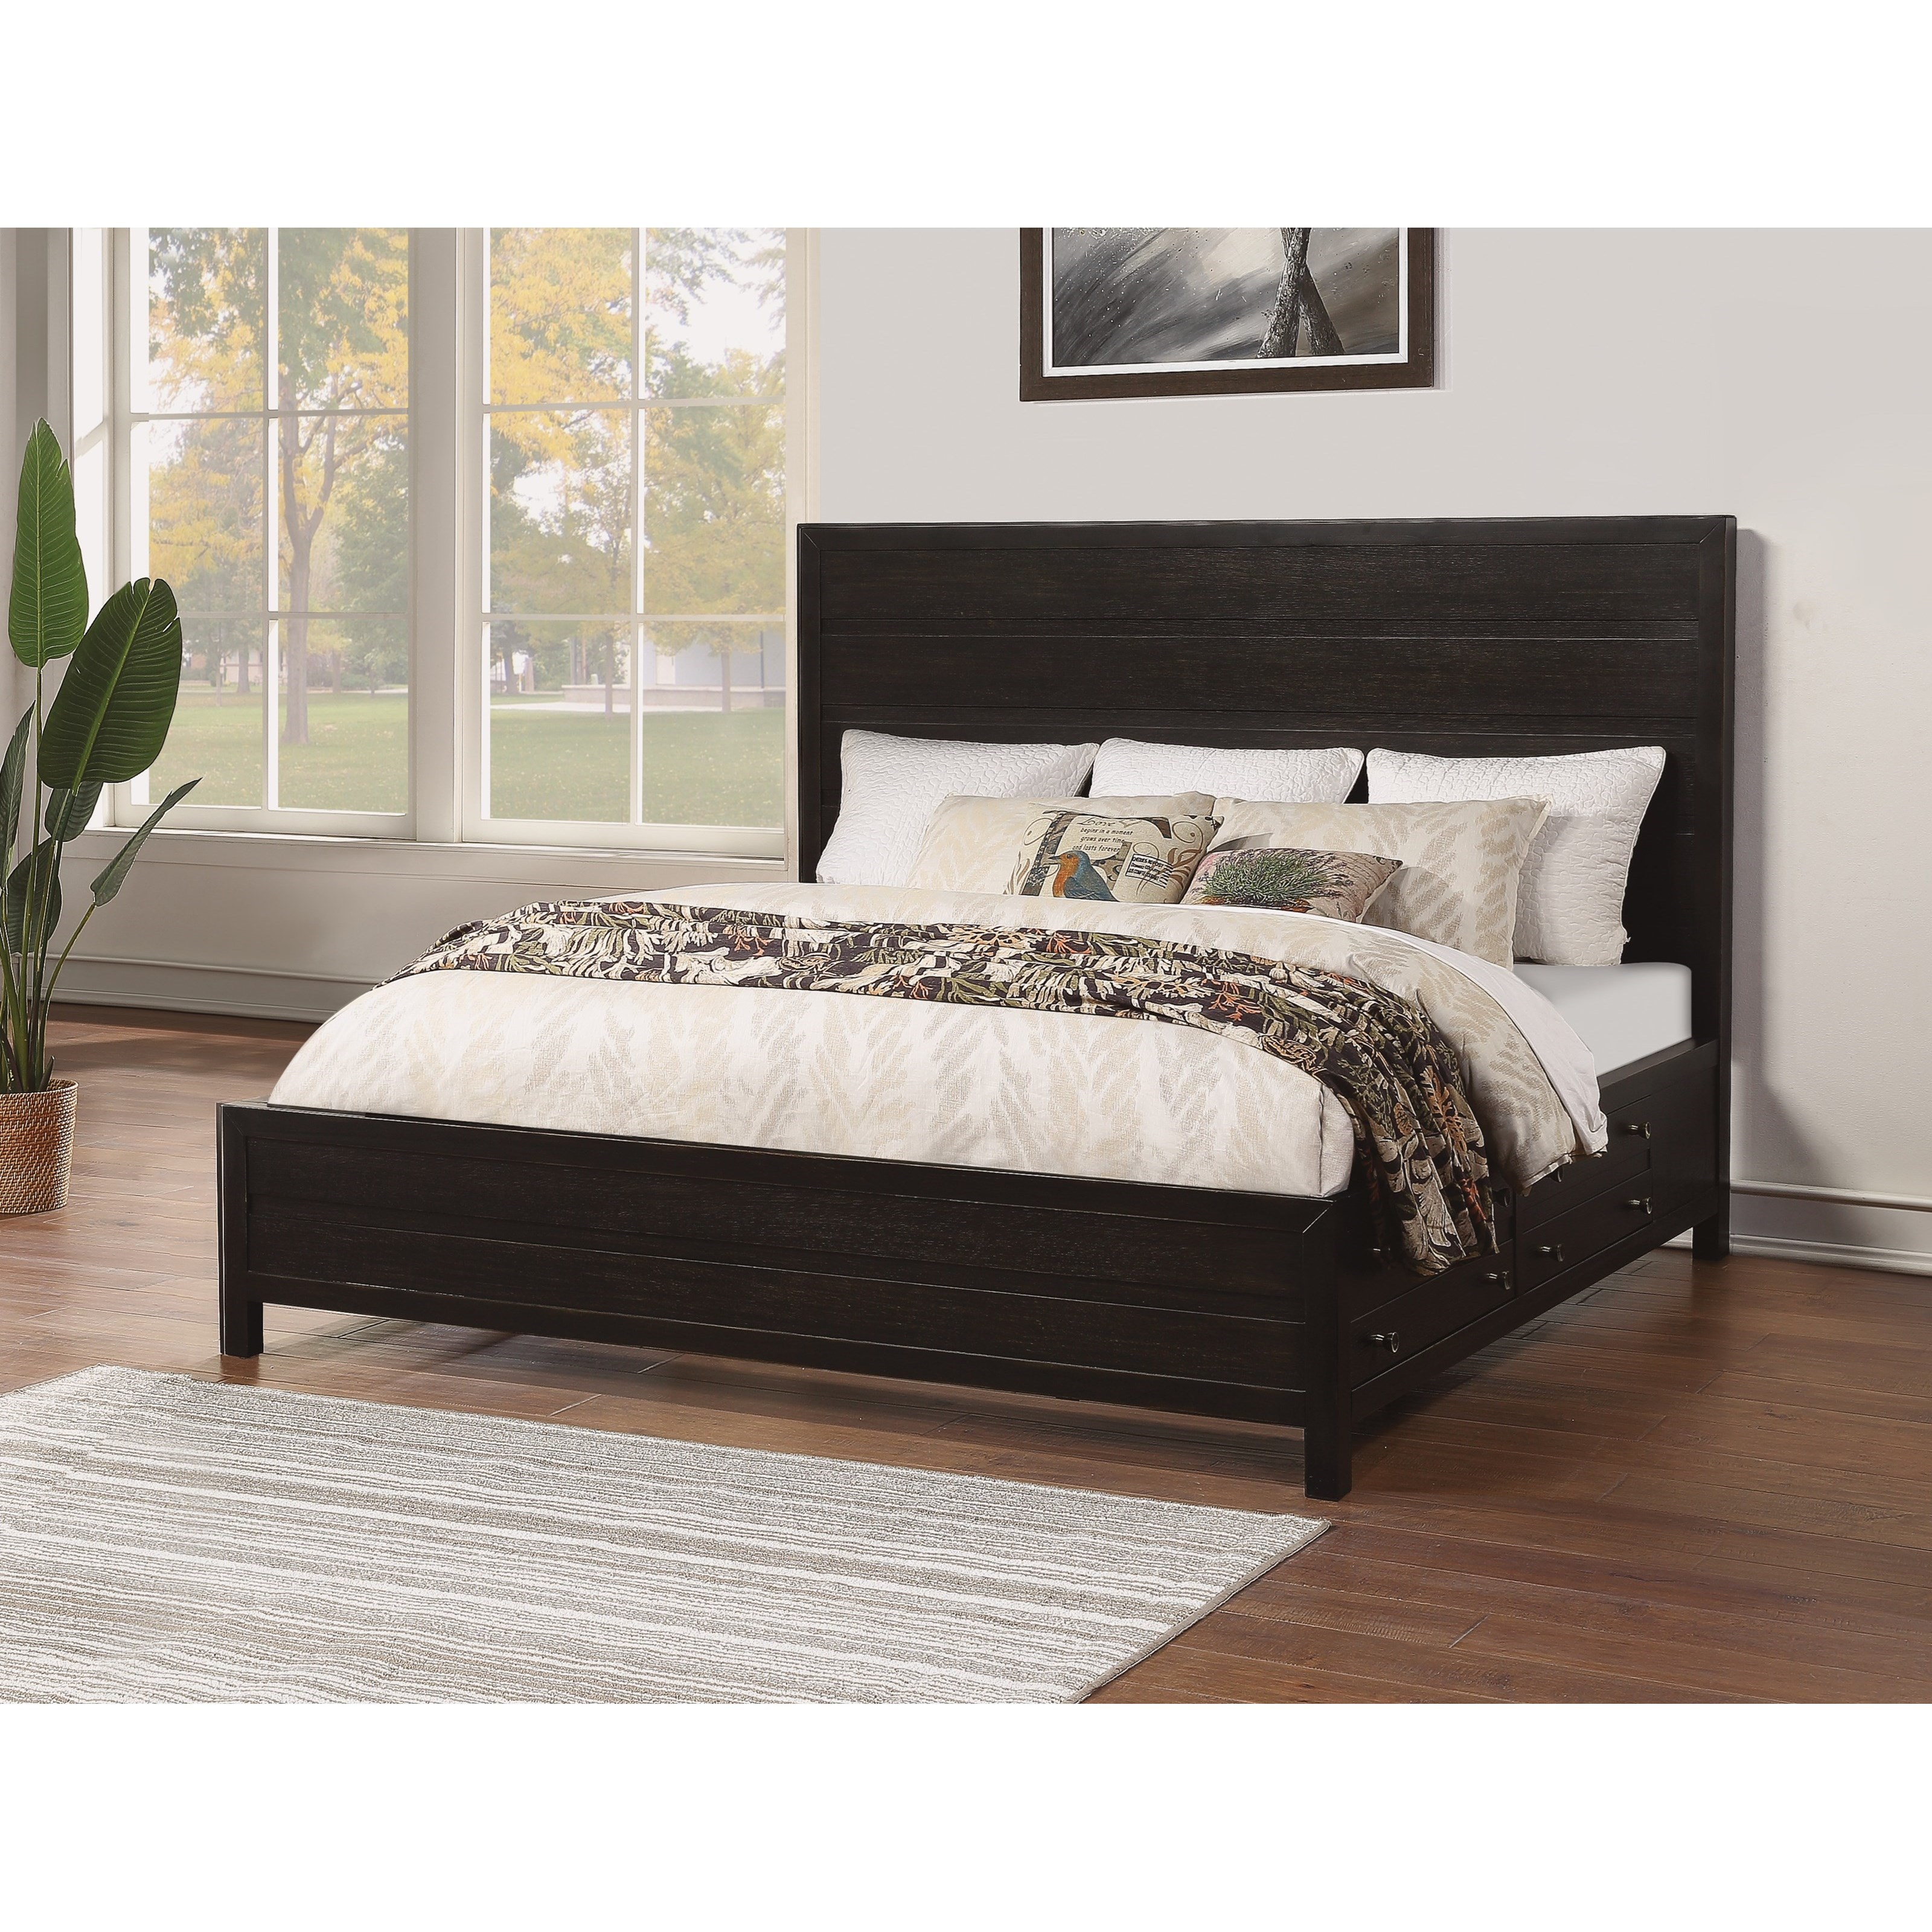 Cologne California King Low Profile Storage Bed by Flexsteel Wynwood Collection at Pilgrim Furniture City